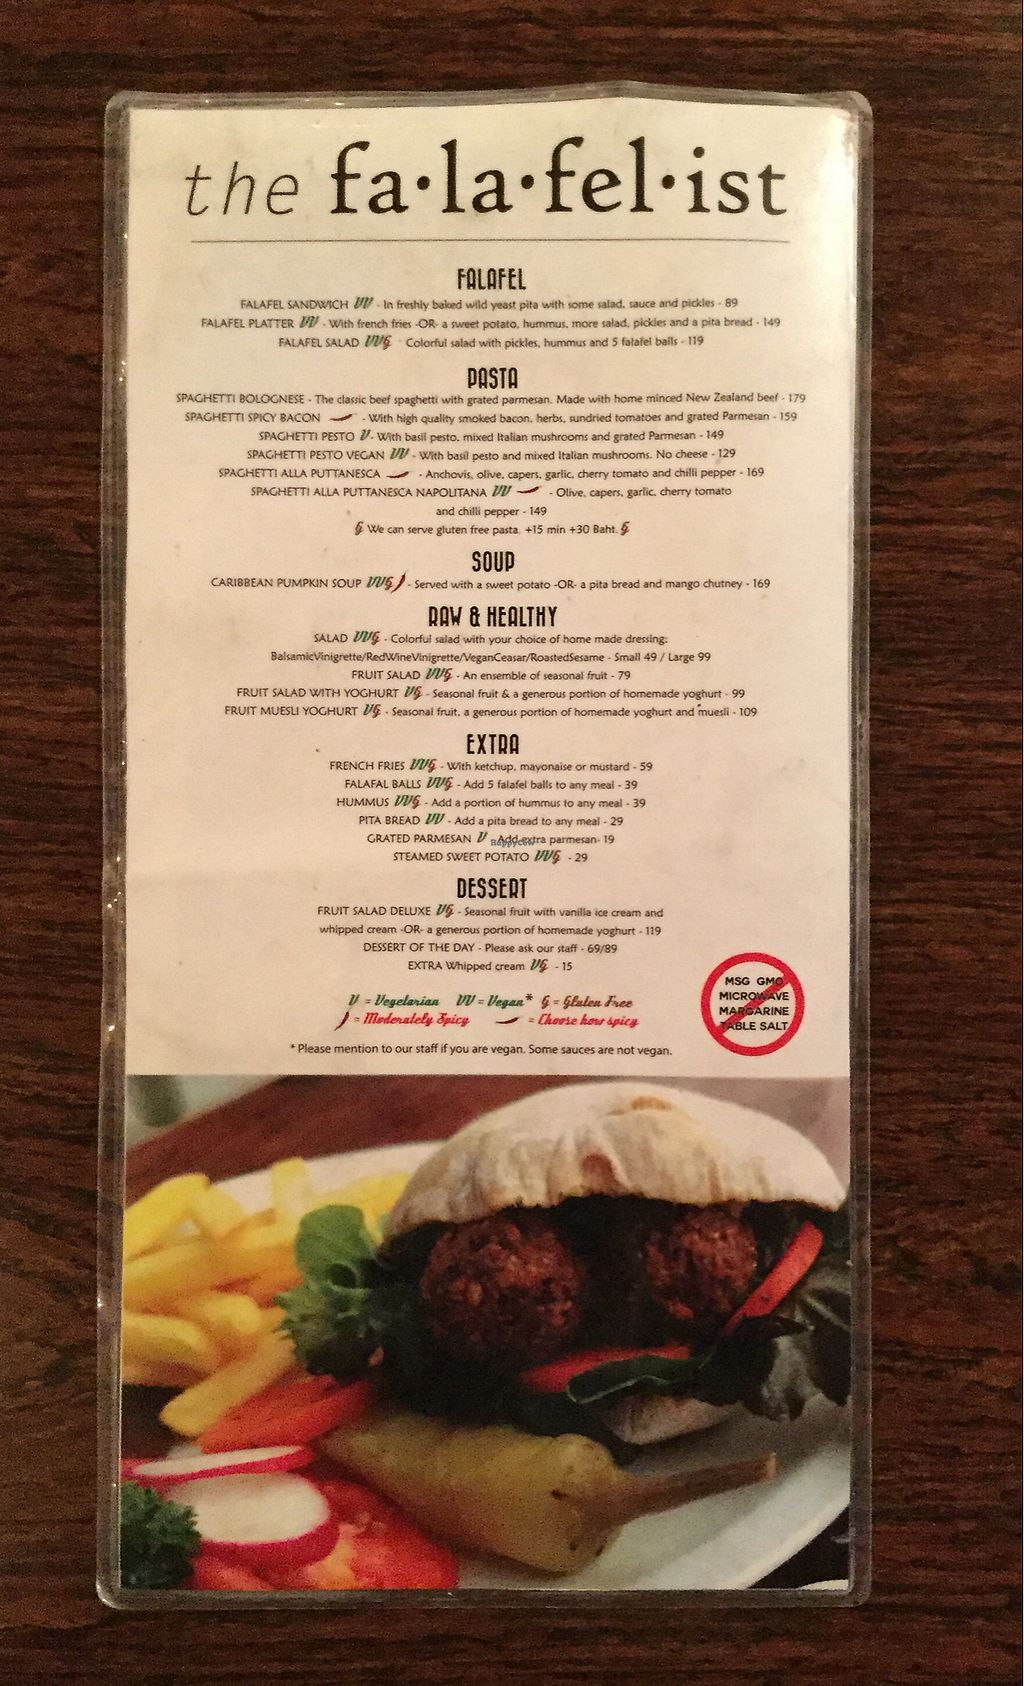 """Photo of The Falafelist  by <a href=""""/members/profile/Mike%20Munsie"""">Mike Munsie</a> <br/>menu 1 <br/> February 9, 2018  - <a href='/contact/abuse/image/107269/356752'>Report</a>"""